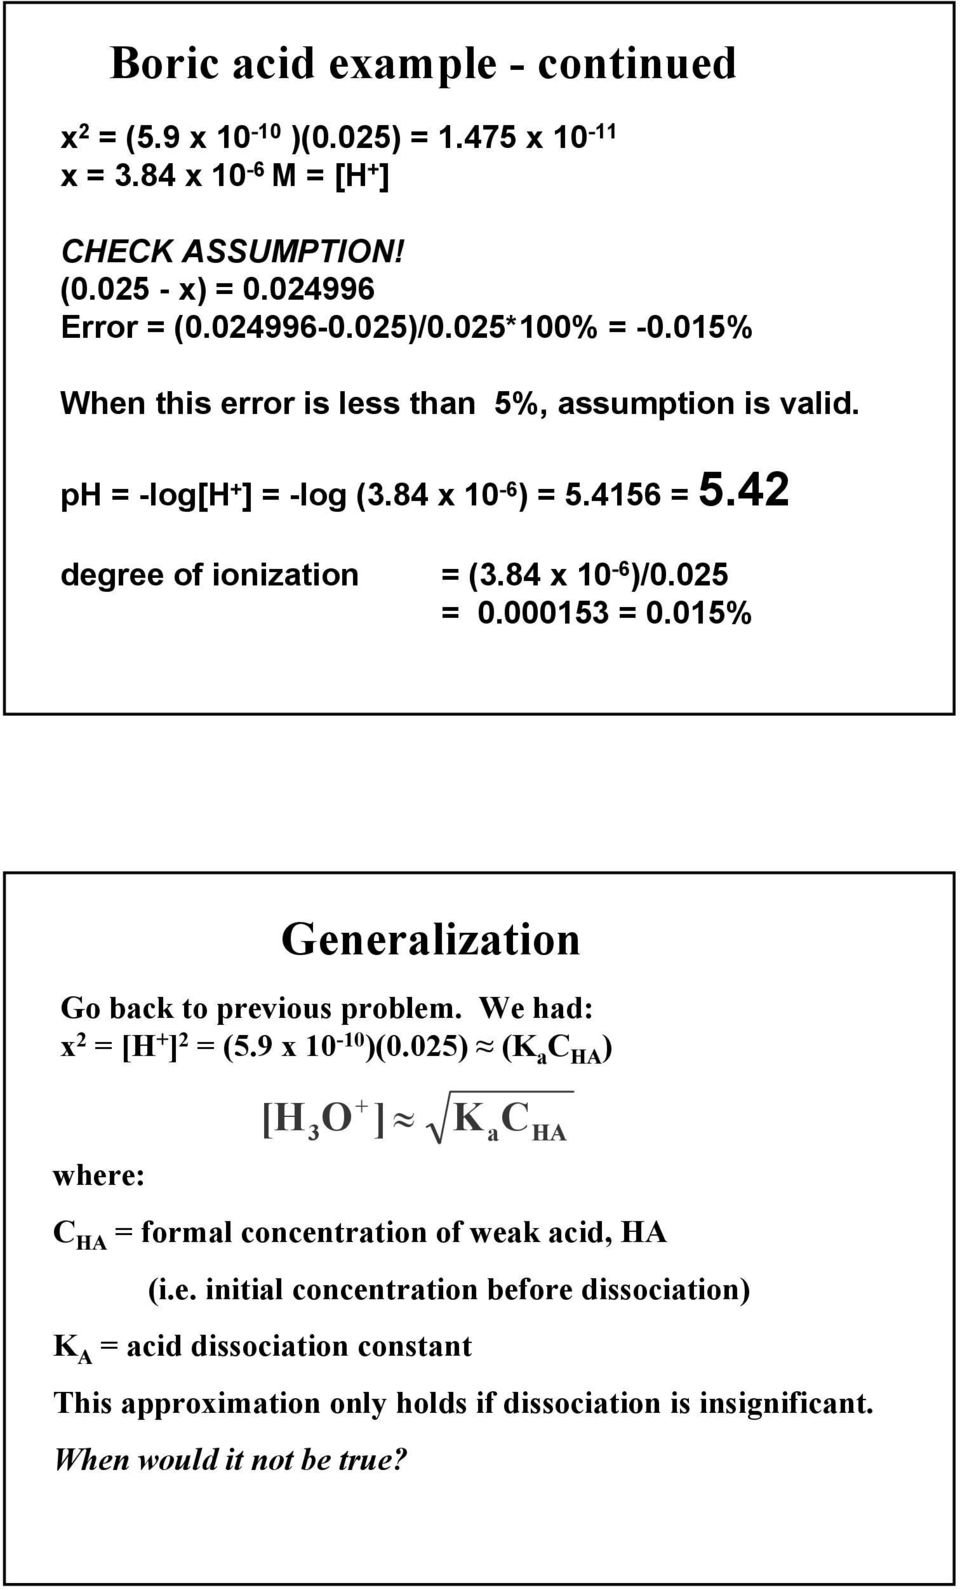 000153 0.015% Generalization Go back to previous problem. We had: x 2 [H + ] 2 (5.9 x 10-10 )(0.